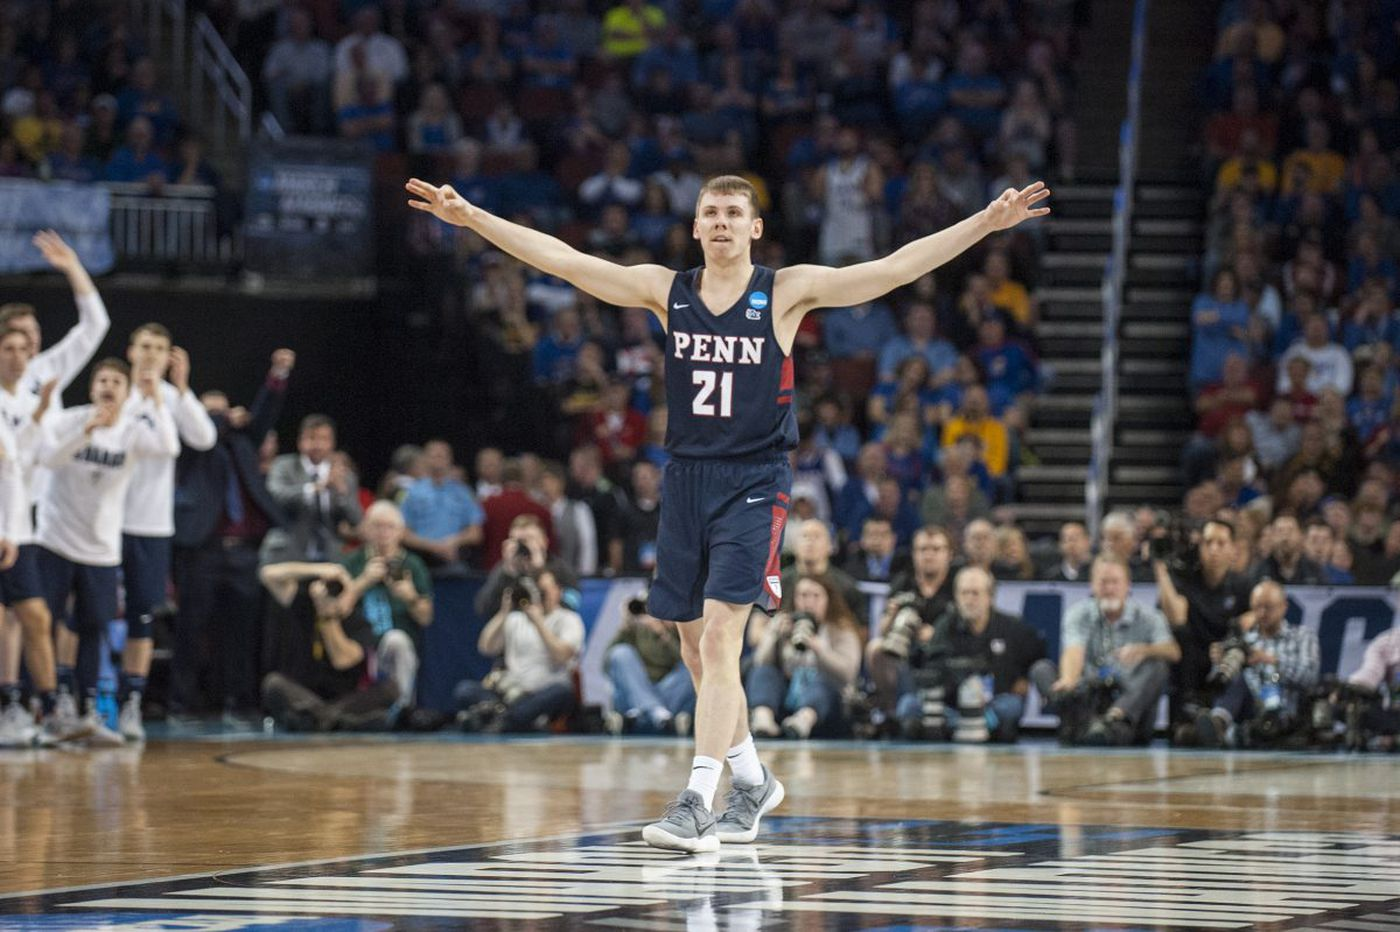 For Penn, March madness memories will outlast regrets